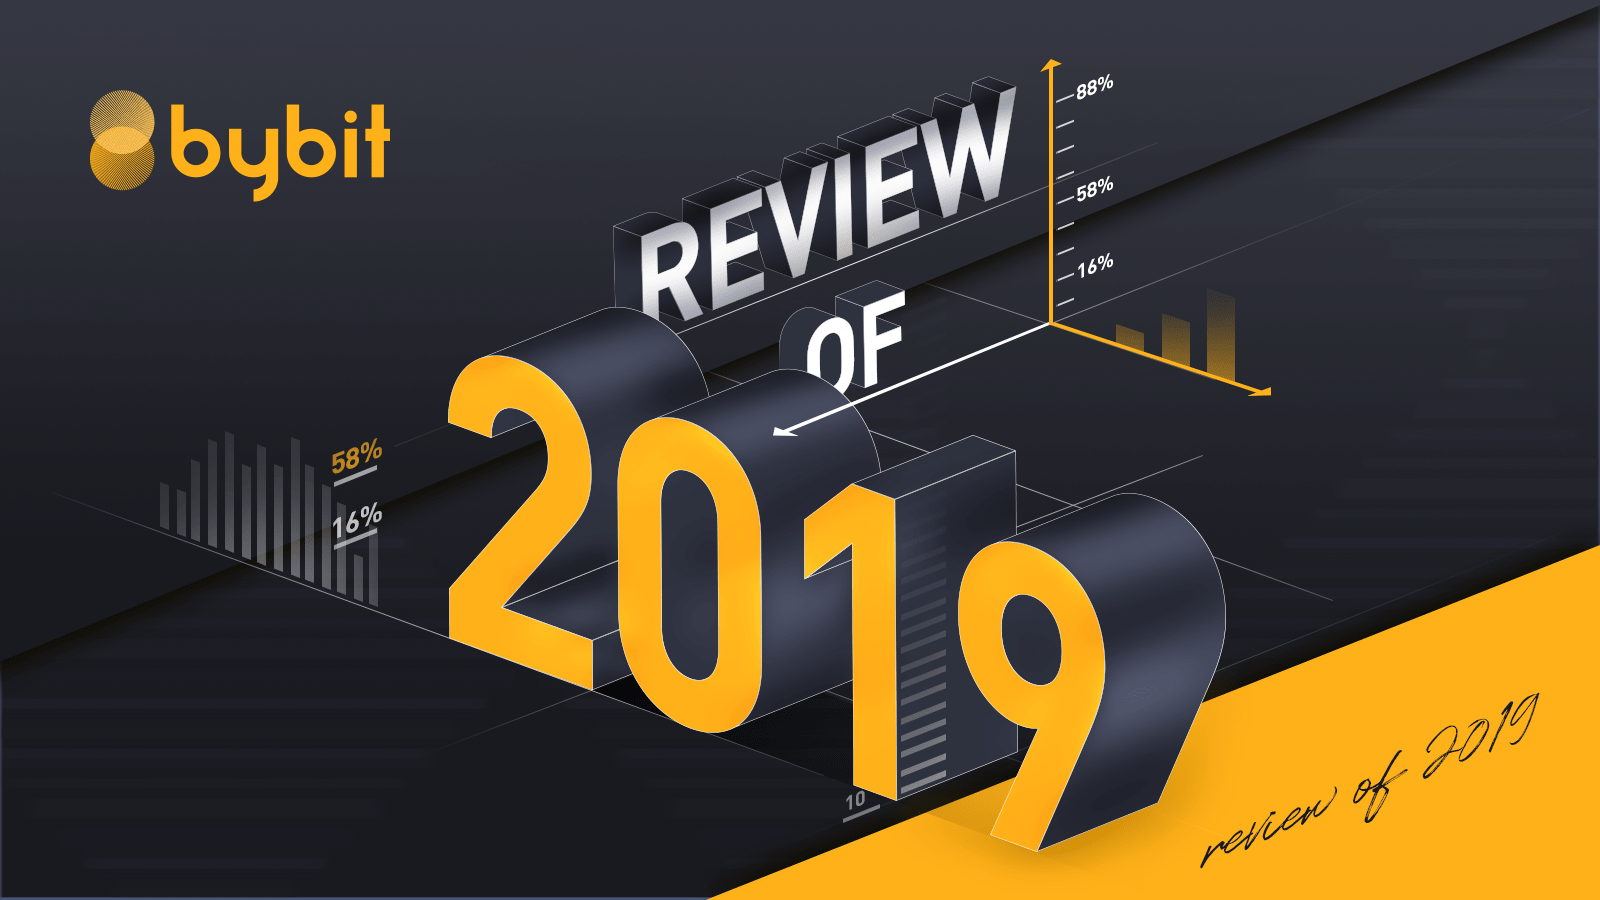 bybit's review of 2019